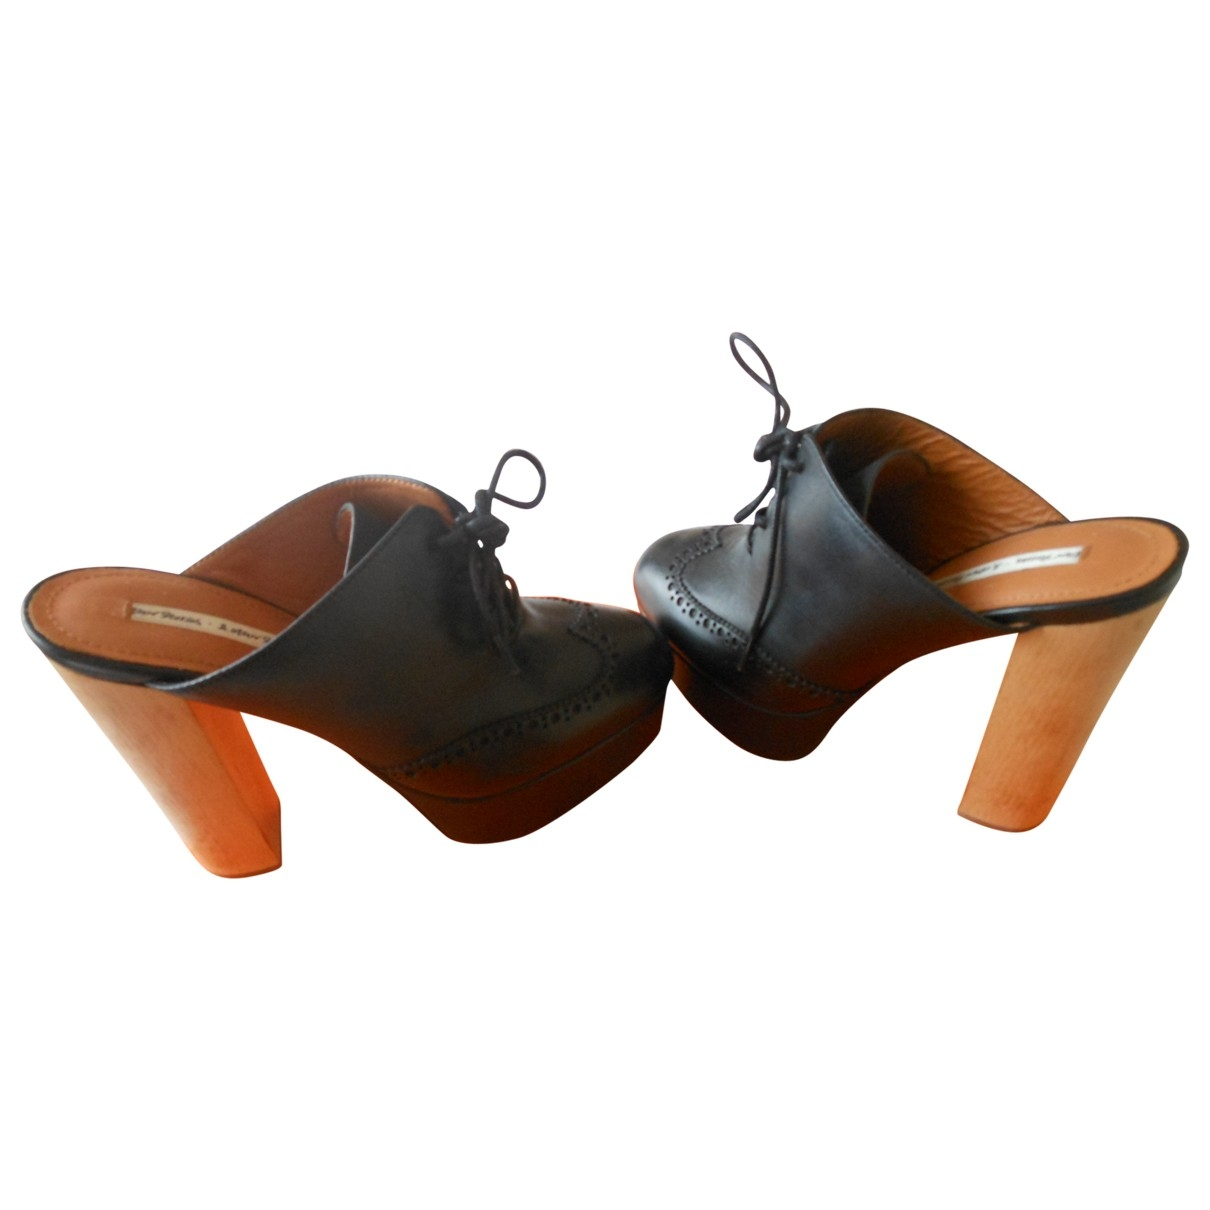 & Stories \N Black Leather Mules & Clogs for Women 36 EU